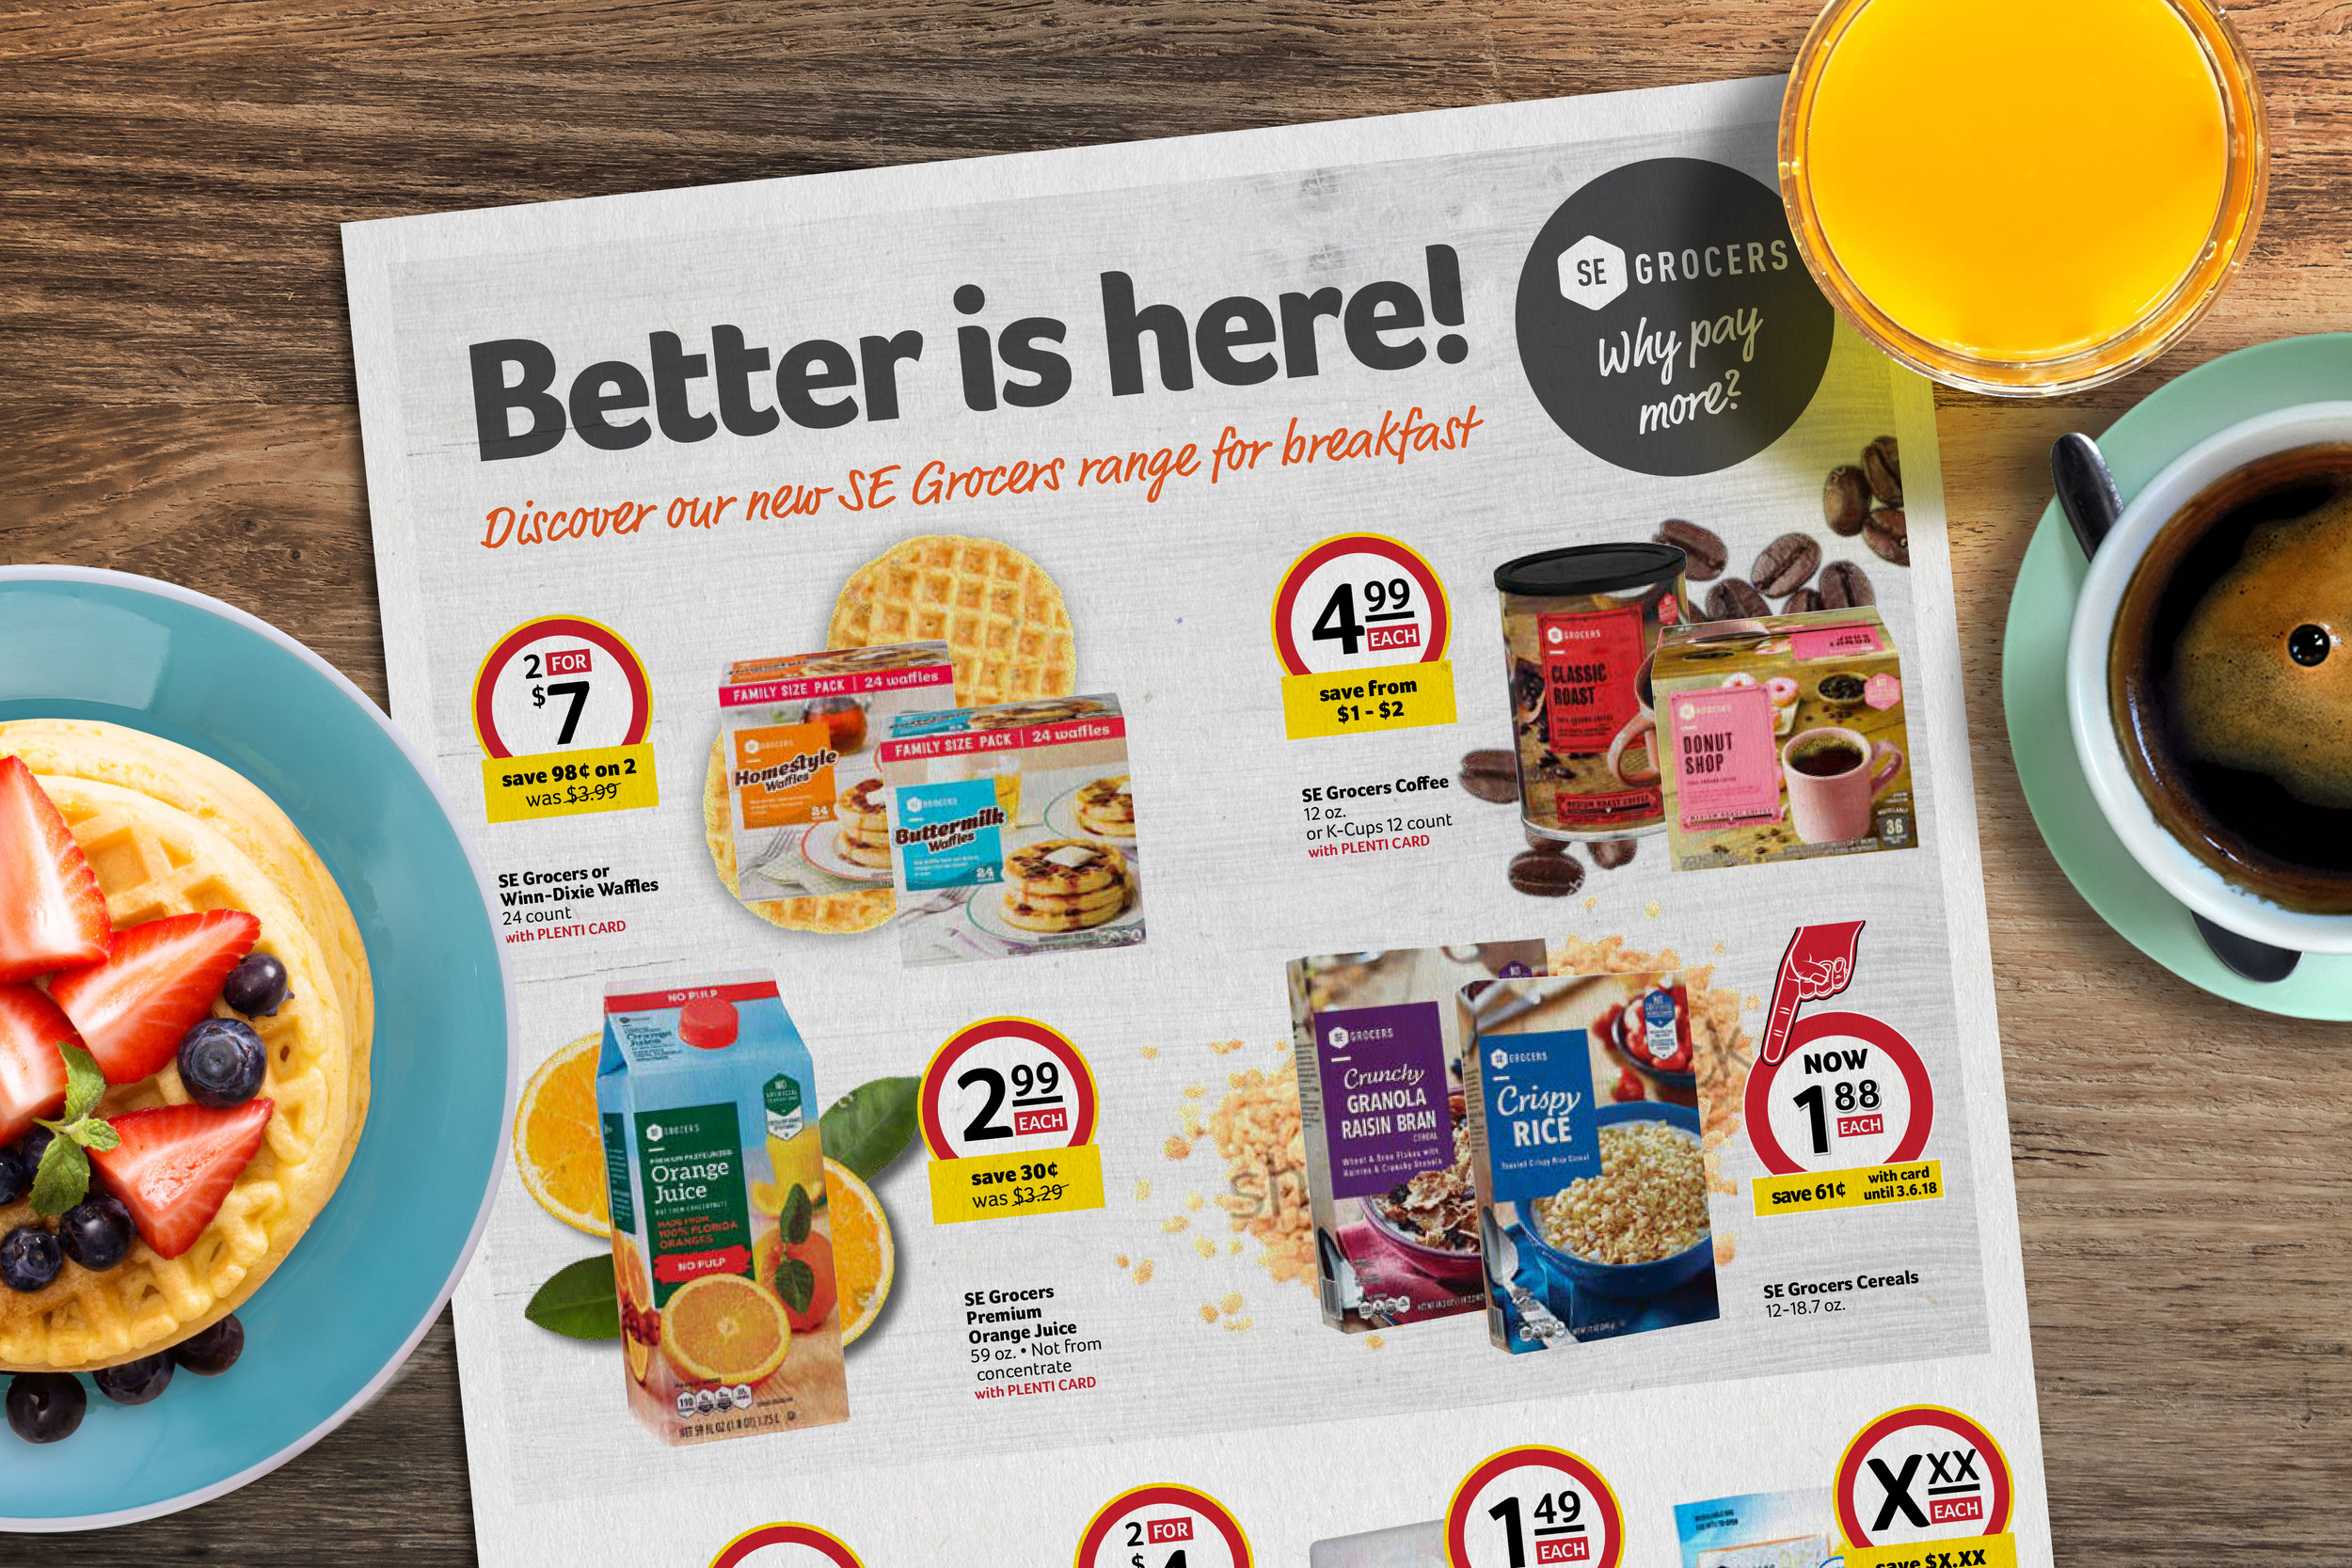 SE Grocers own brand breakfast promotion we designed for Winn-Dixie